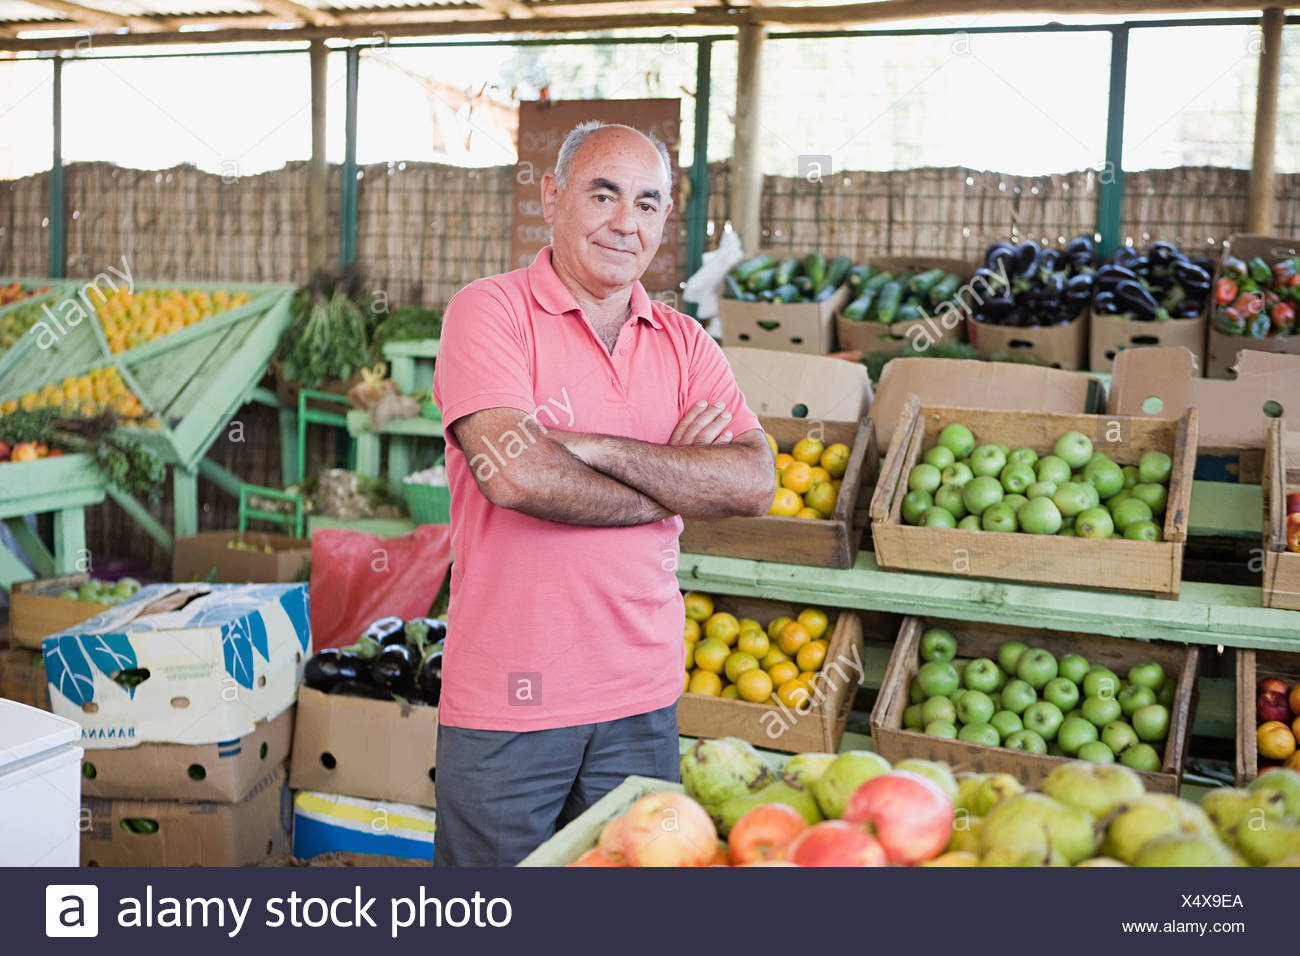 Market trader at fruit and vegetable stall - Stock Image